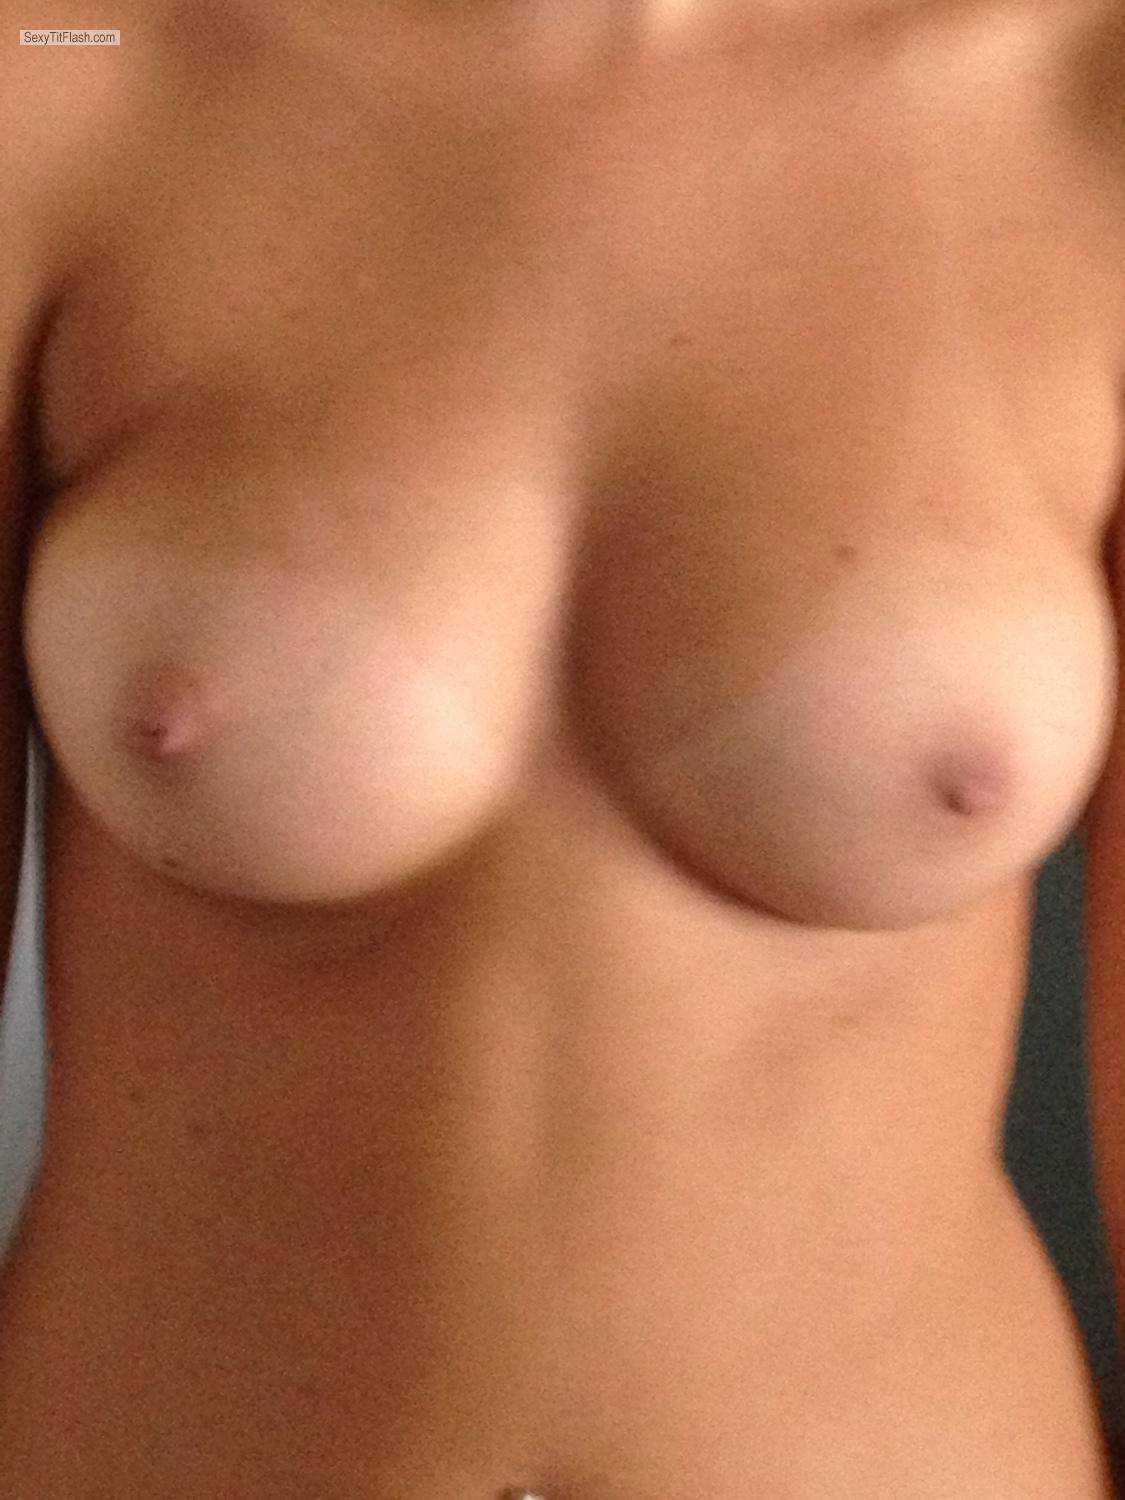 Medium Tits Happy Monday!!:)